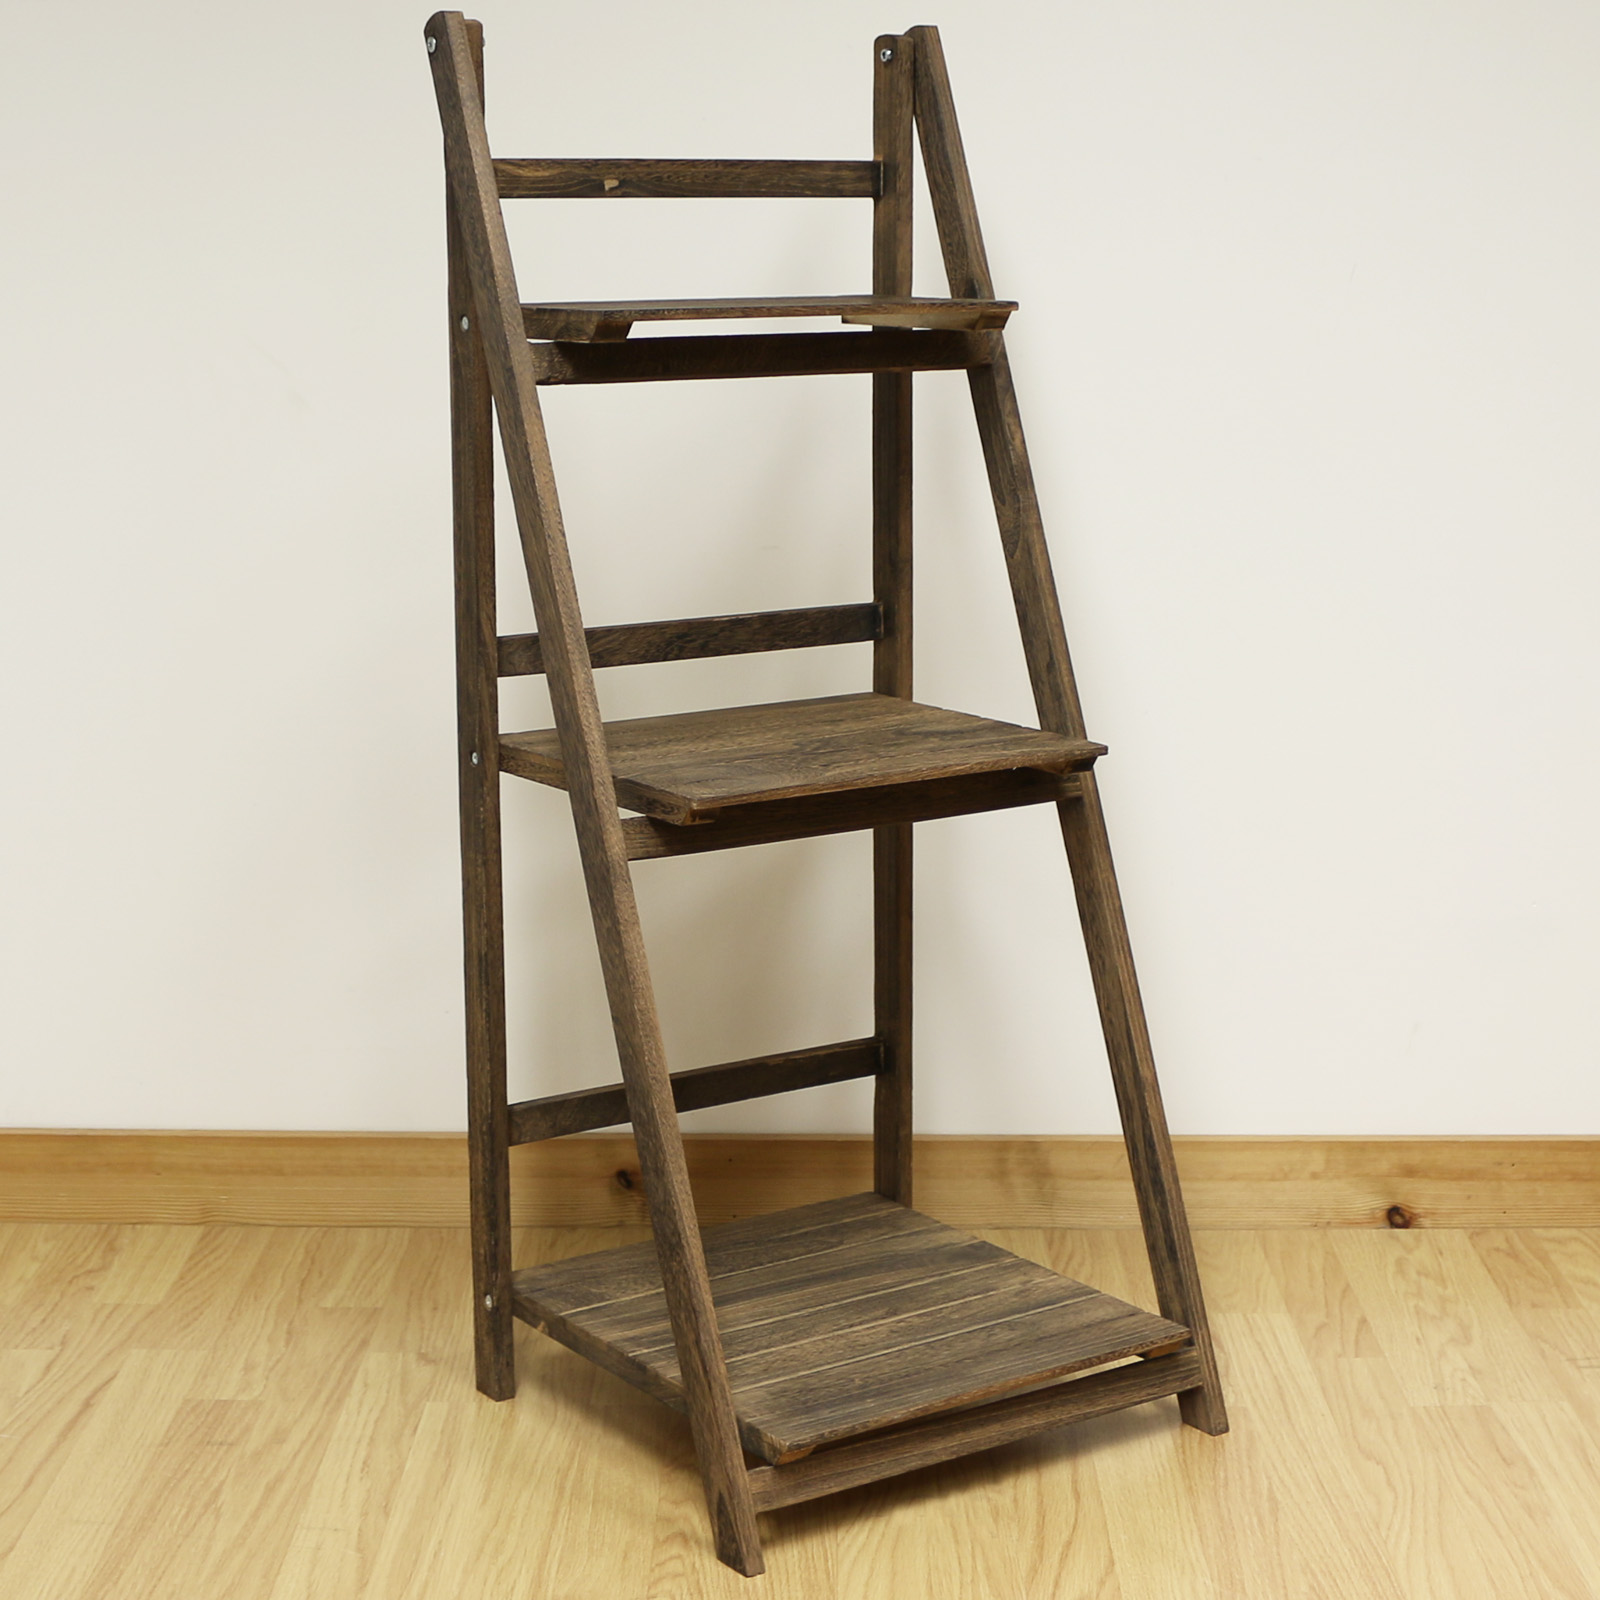 3 Tier Brown Ladder Shelf Display Unit Free Standing/Folding Book Stand/Shelves | eBay